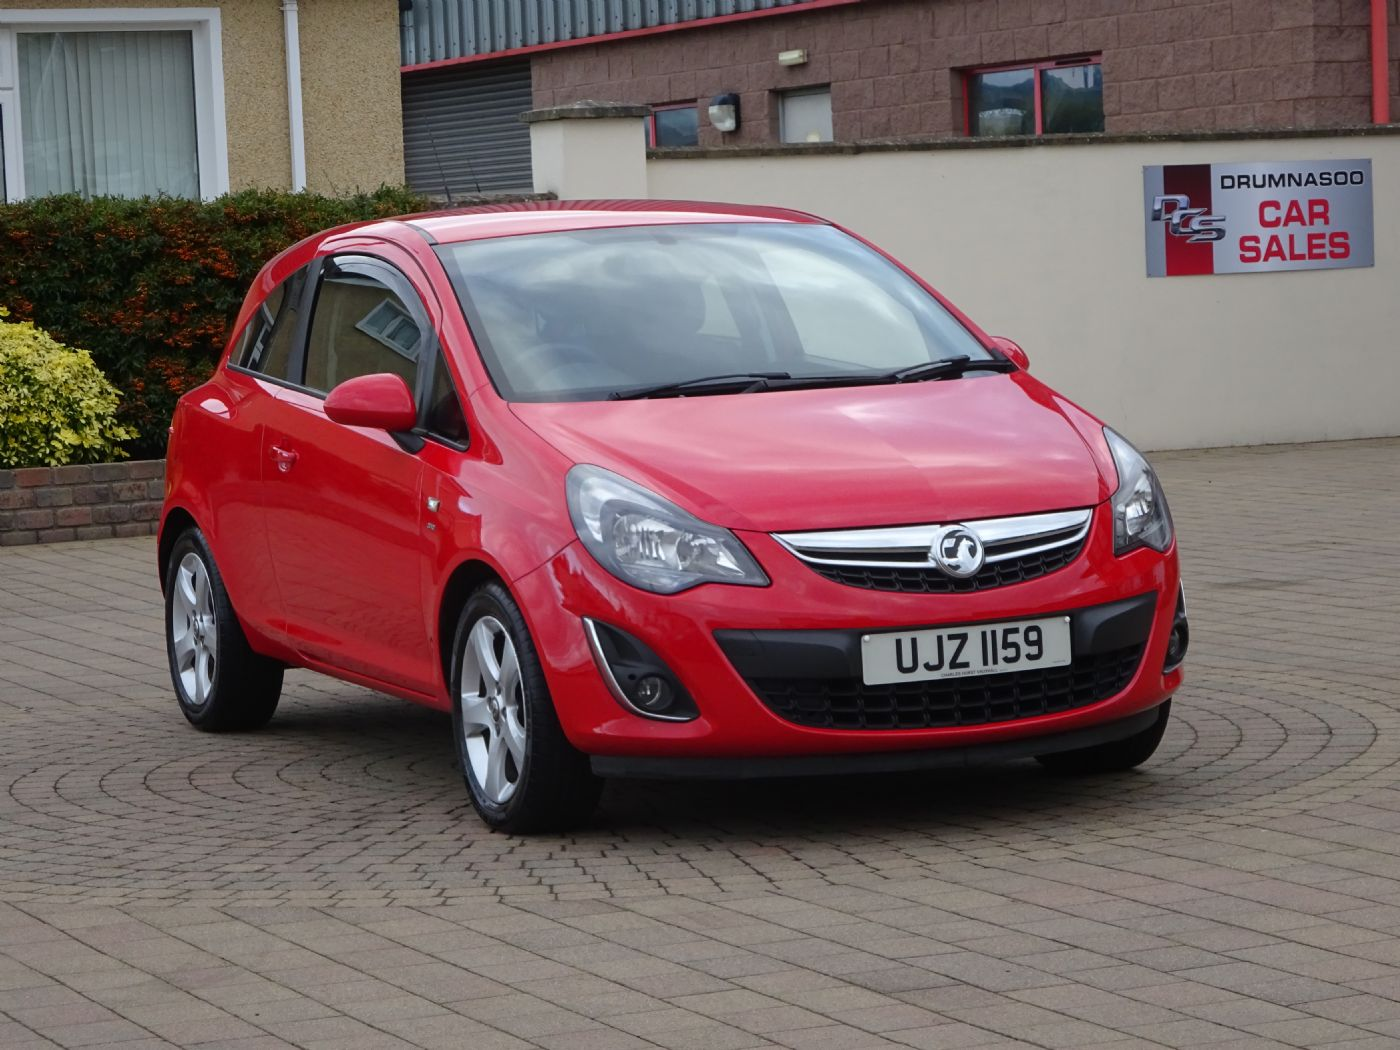 Vauxhall Corsa 1.2 SXI 3Dr, One owner, Alloys